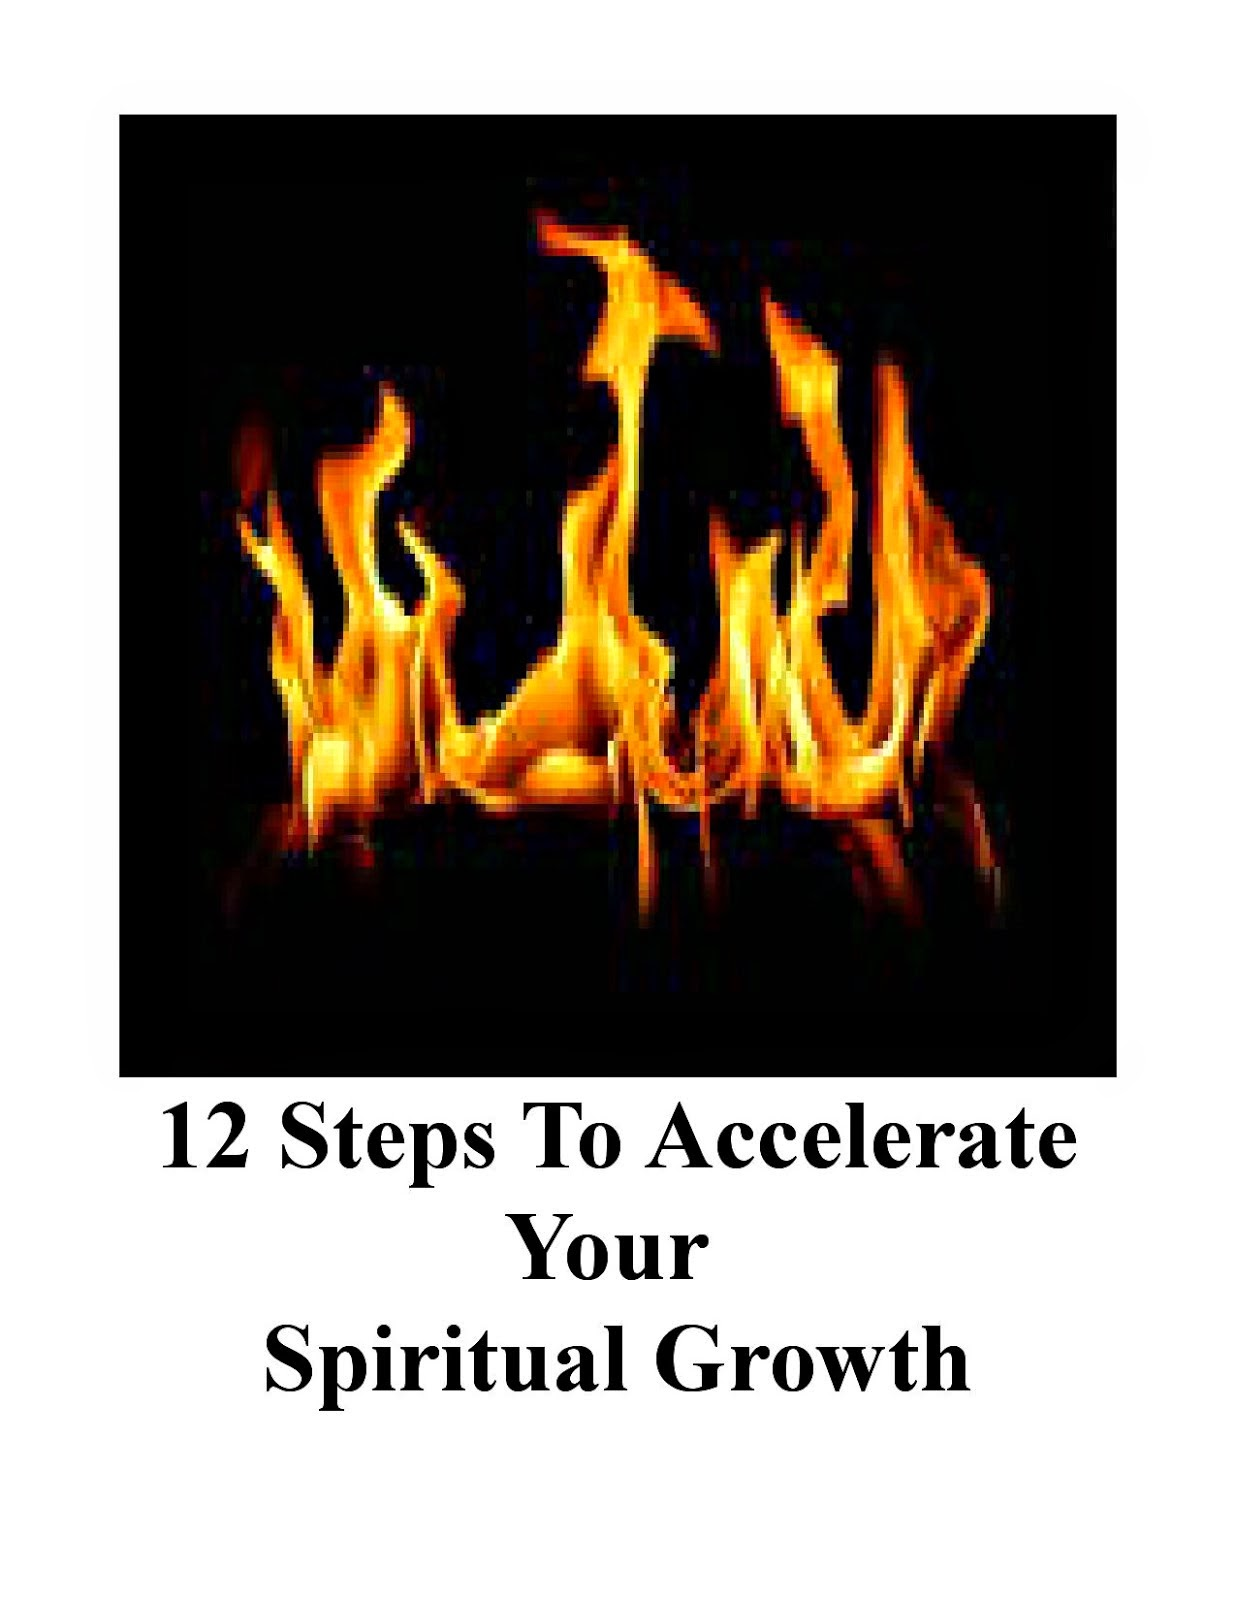 Follow by e-mail to receive your 12 steps